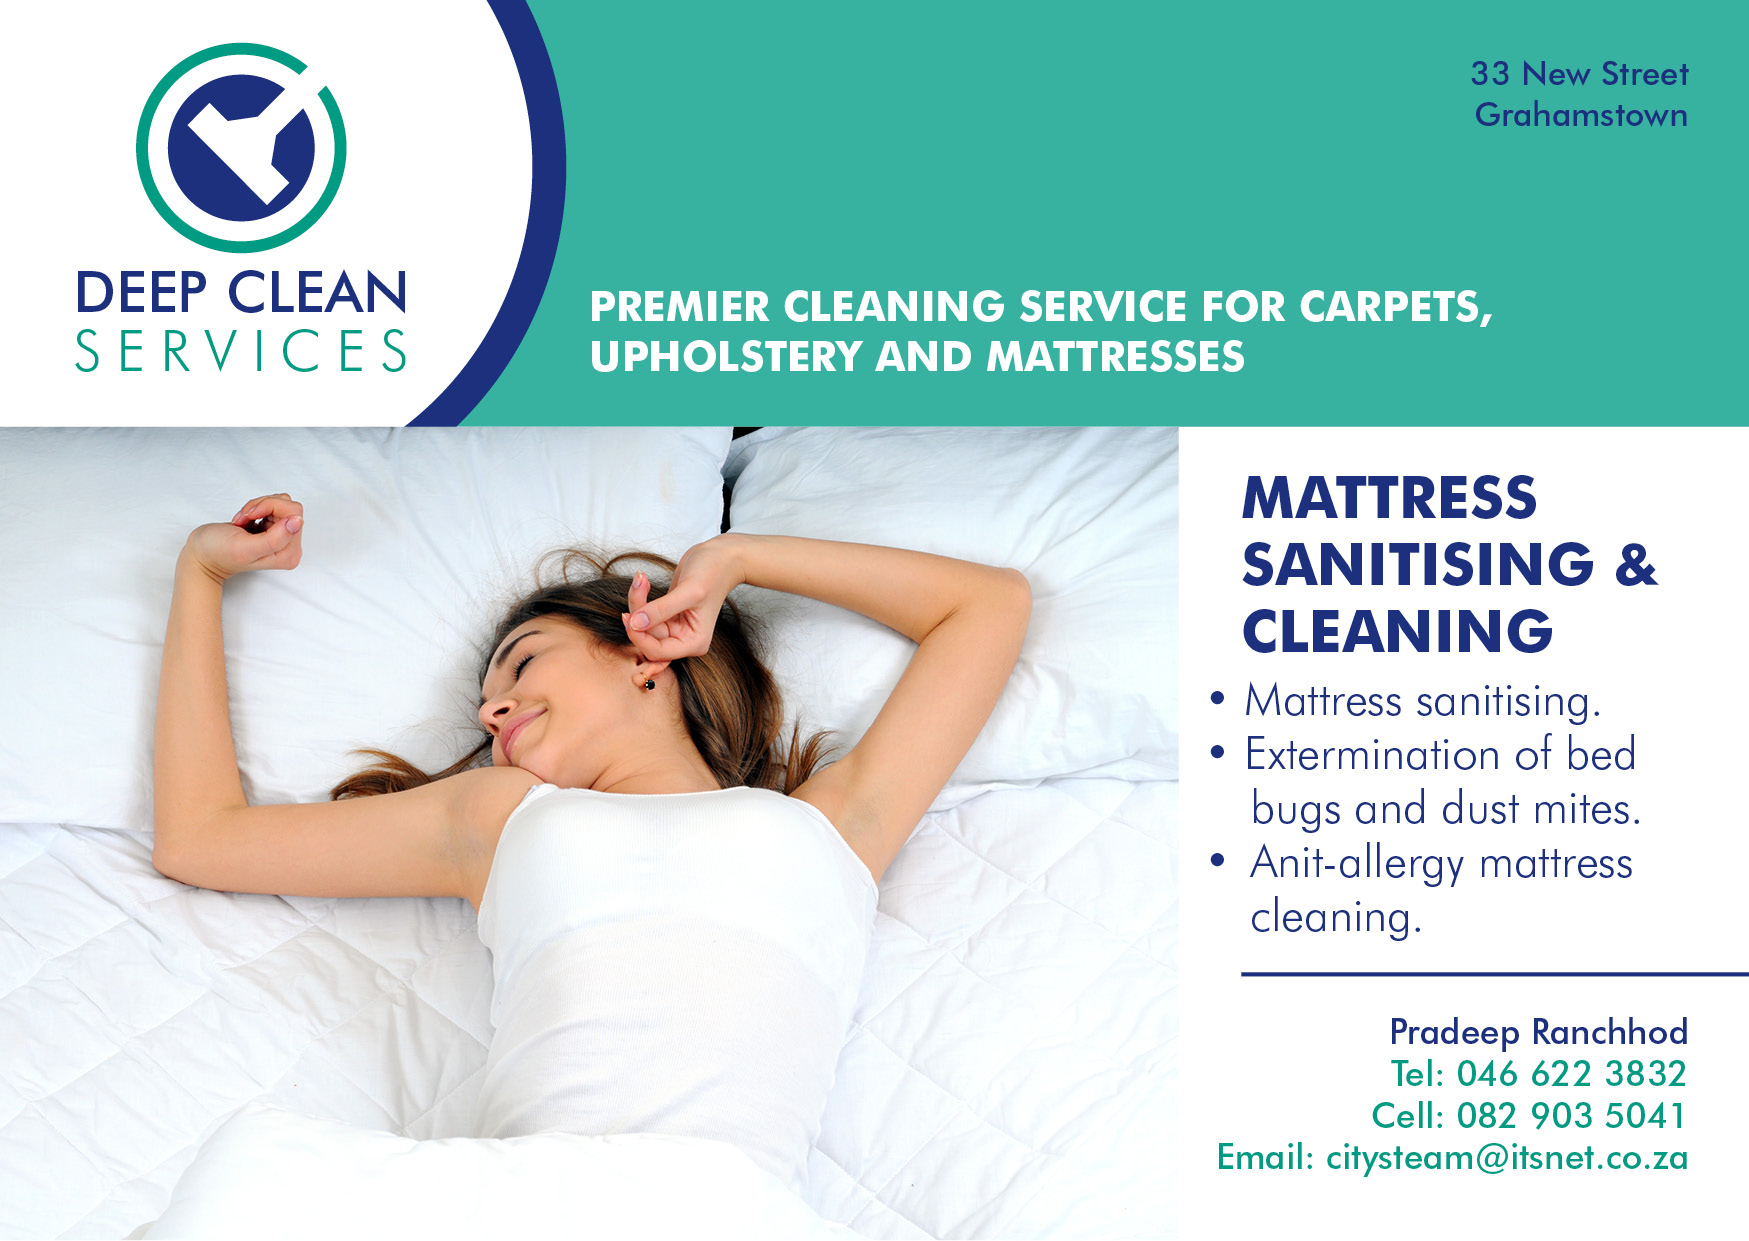 Deep Clean Services Premier Cleaning Services For Carpets Upholstery Mattresses